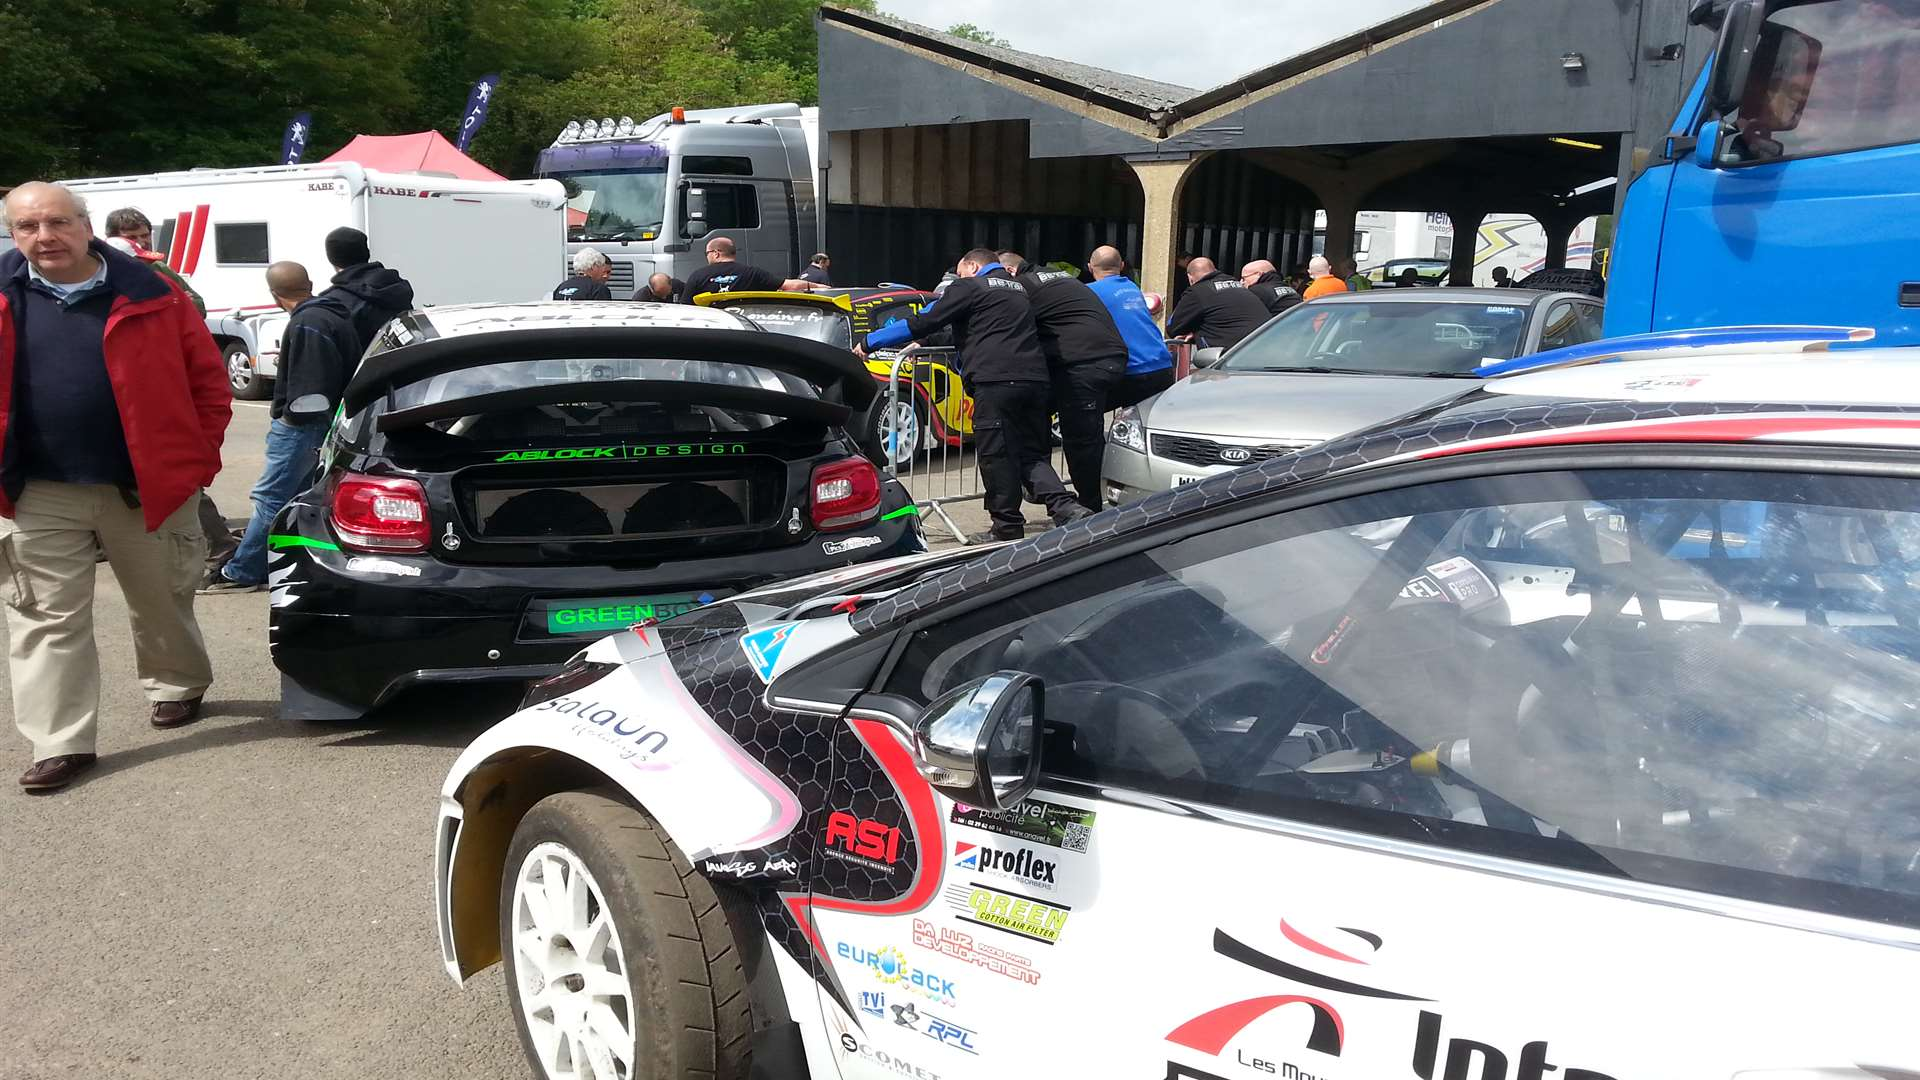 The scrutineering bay was a very busy place